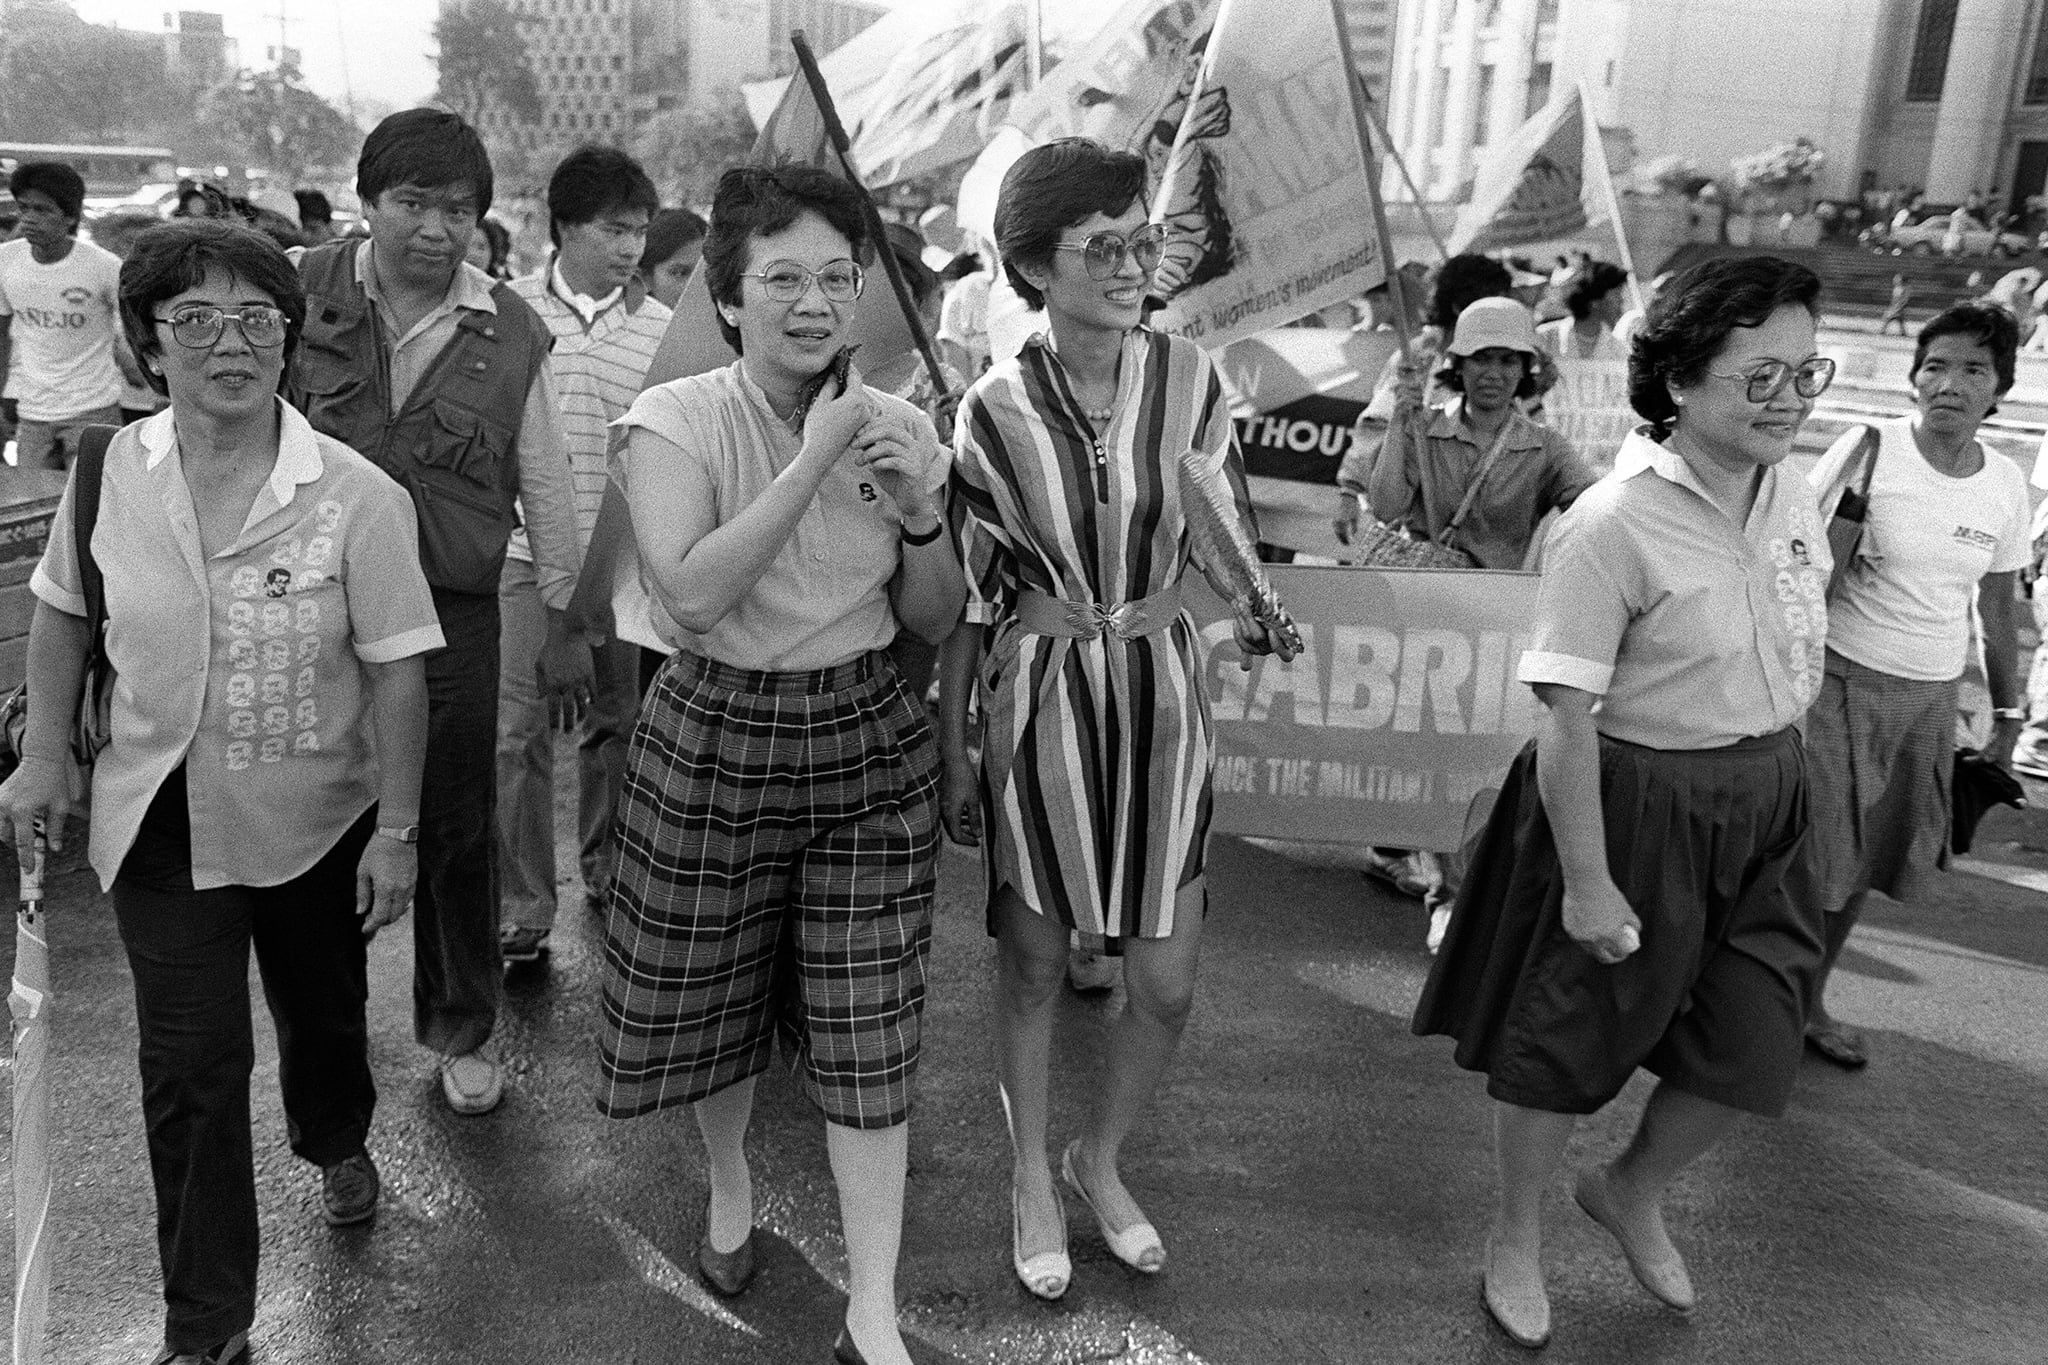 International Women's Day in Philippines, 1985